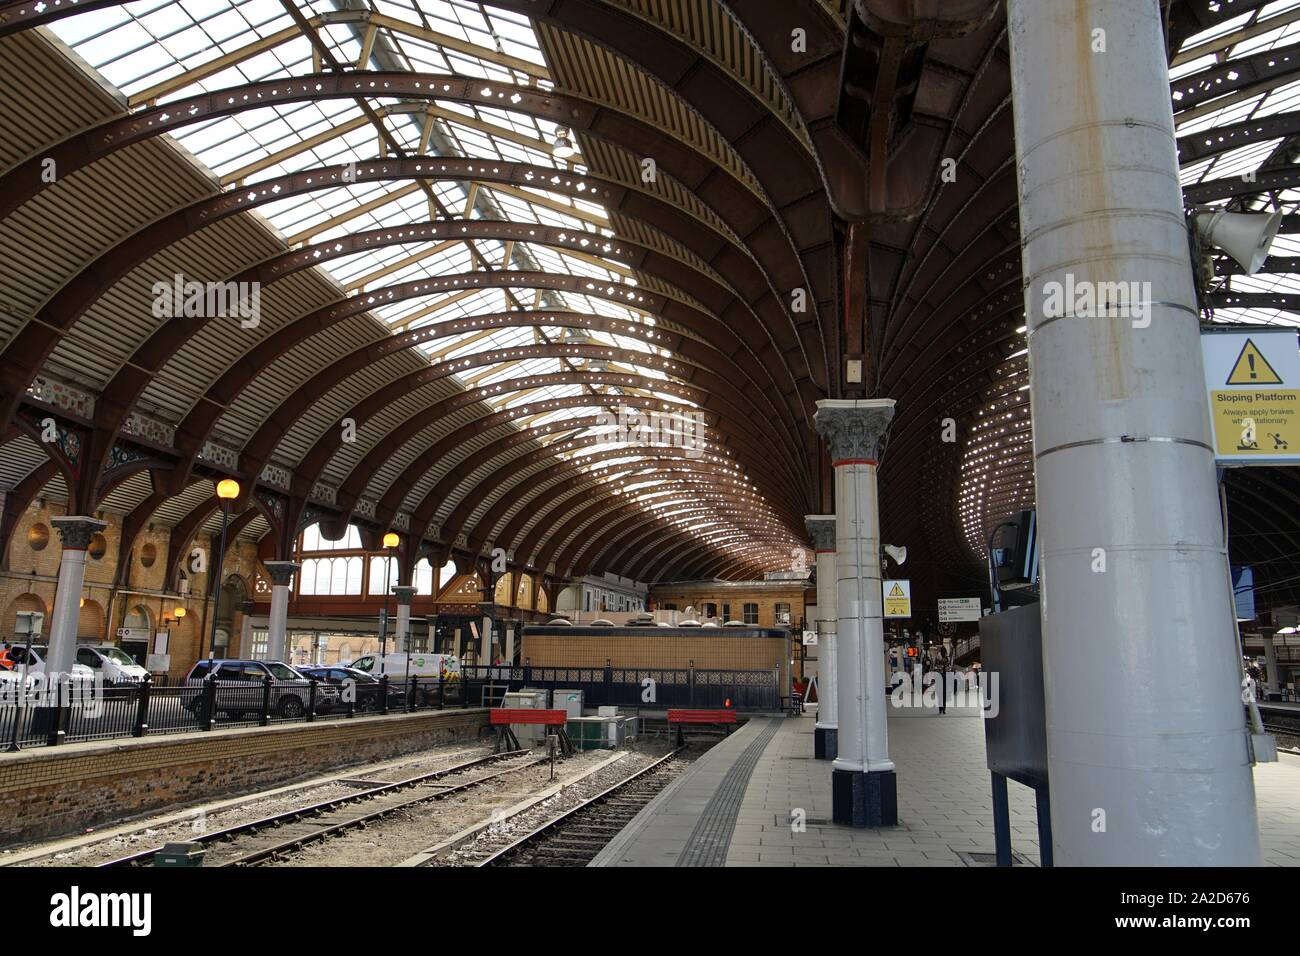 York railway station roof with wrought iron arches and cast iron support columns curving round the station platforms in York Yorkshire England Stock Photo